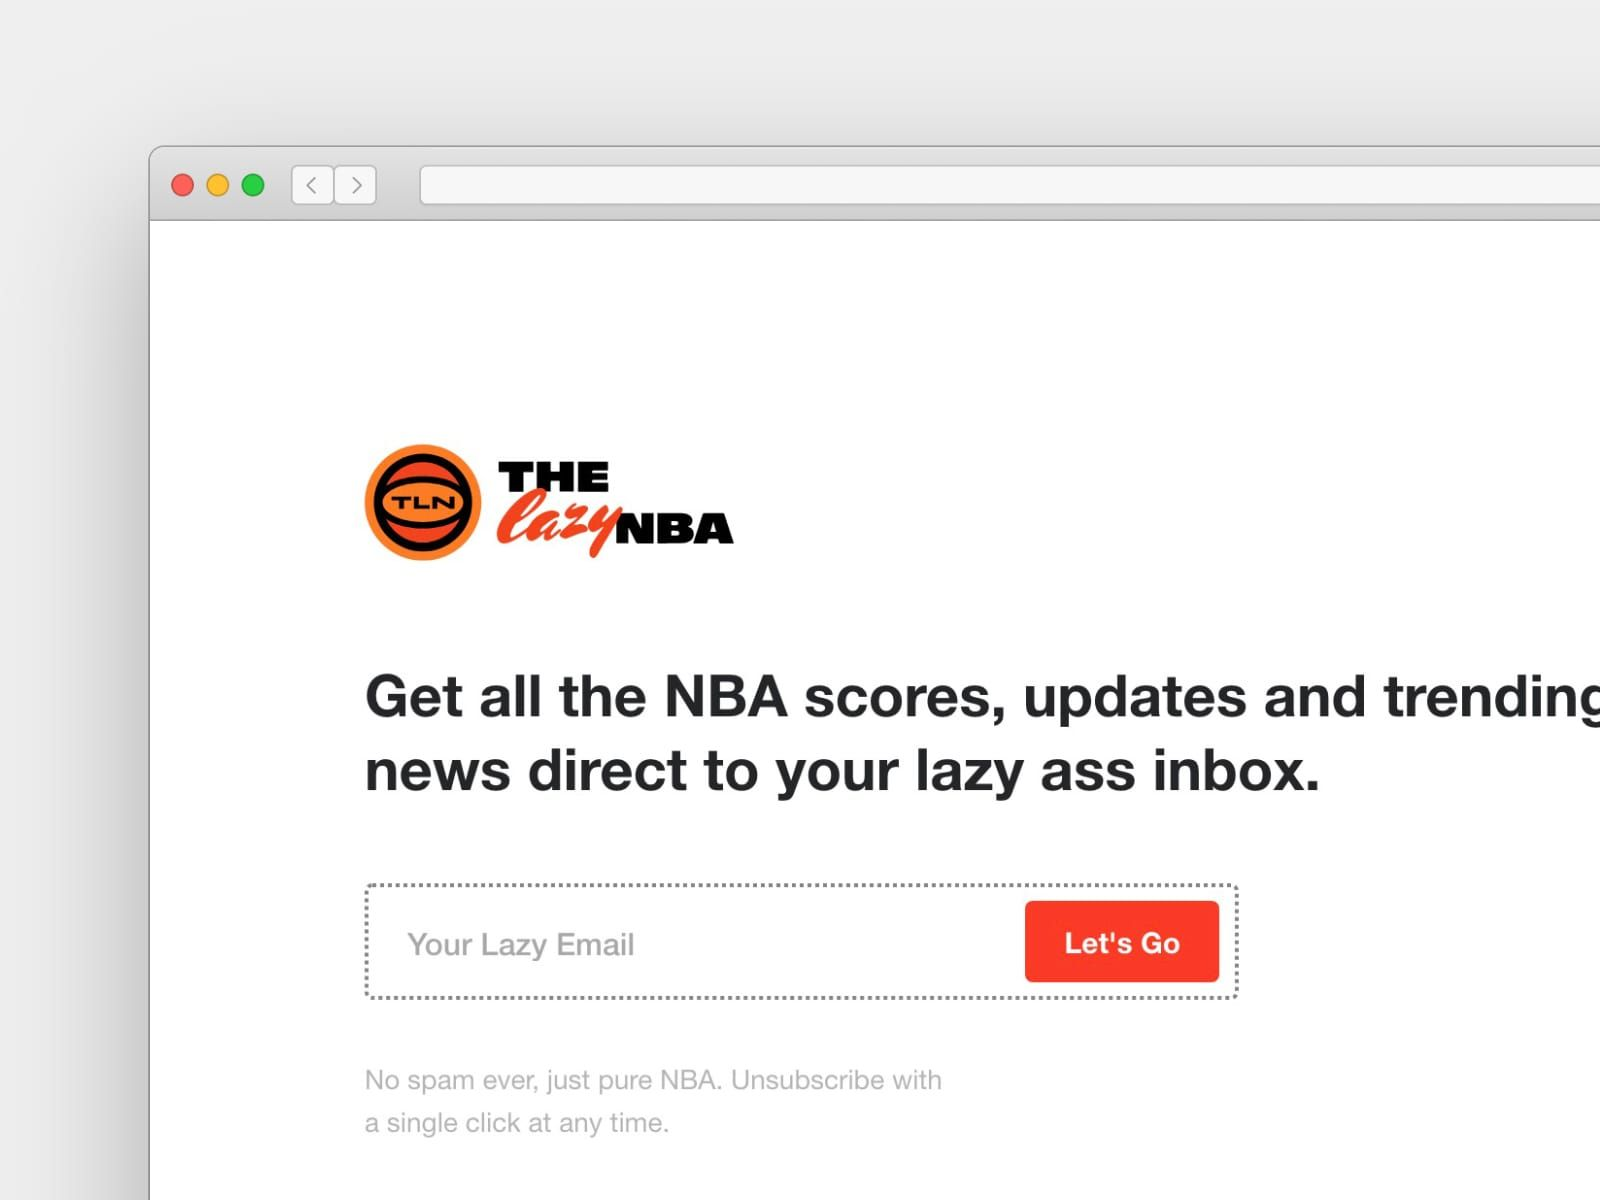 """The Lazy NBA being cheeky on their signup page: """"Your lazy ass inbox"""""""